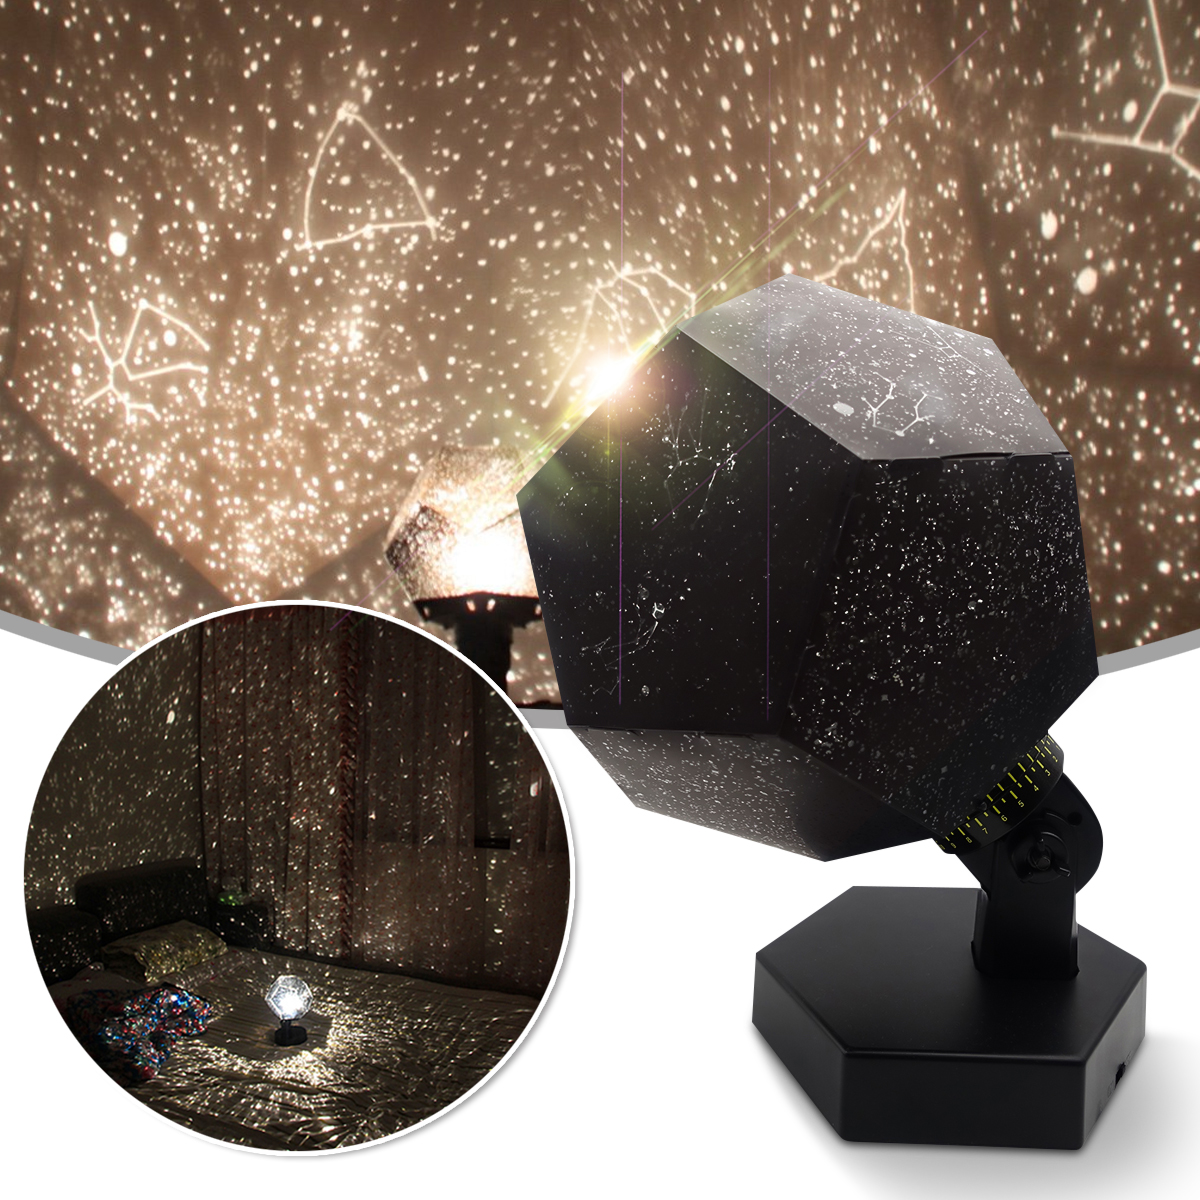 Cosmos Night Light Lamp Christmas Romantic Astro Star Sky Laser Projector Birthday Gift Home Decor PET ABS Metal Battery Powered